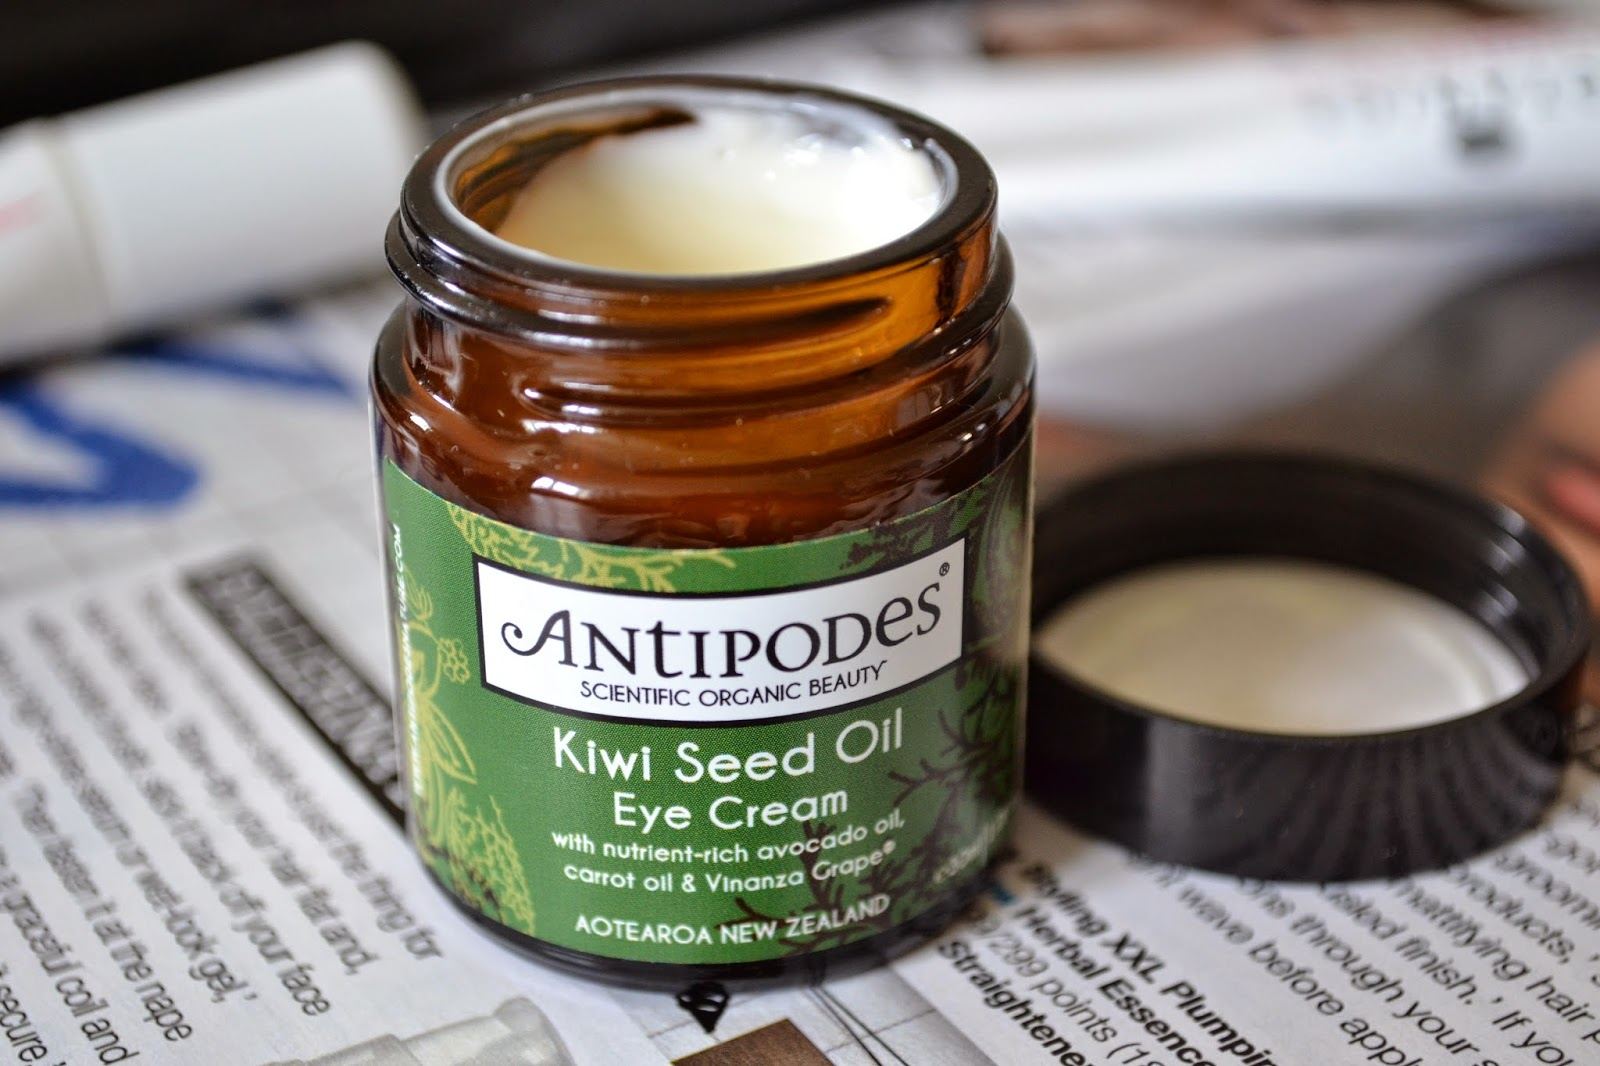 Antipodes Kiwi Seed Oil Eye Cream Review - Aspiring Londoner